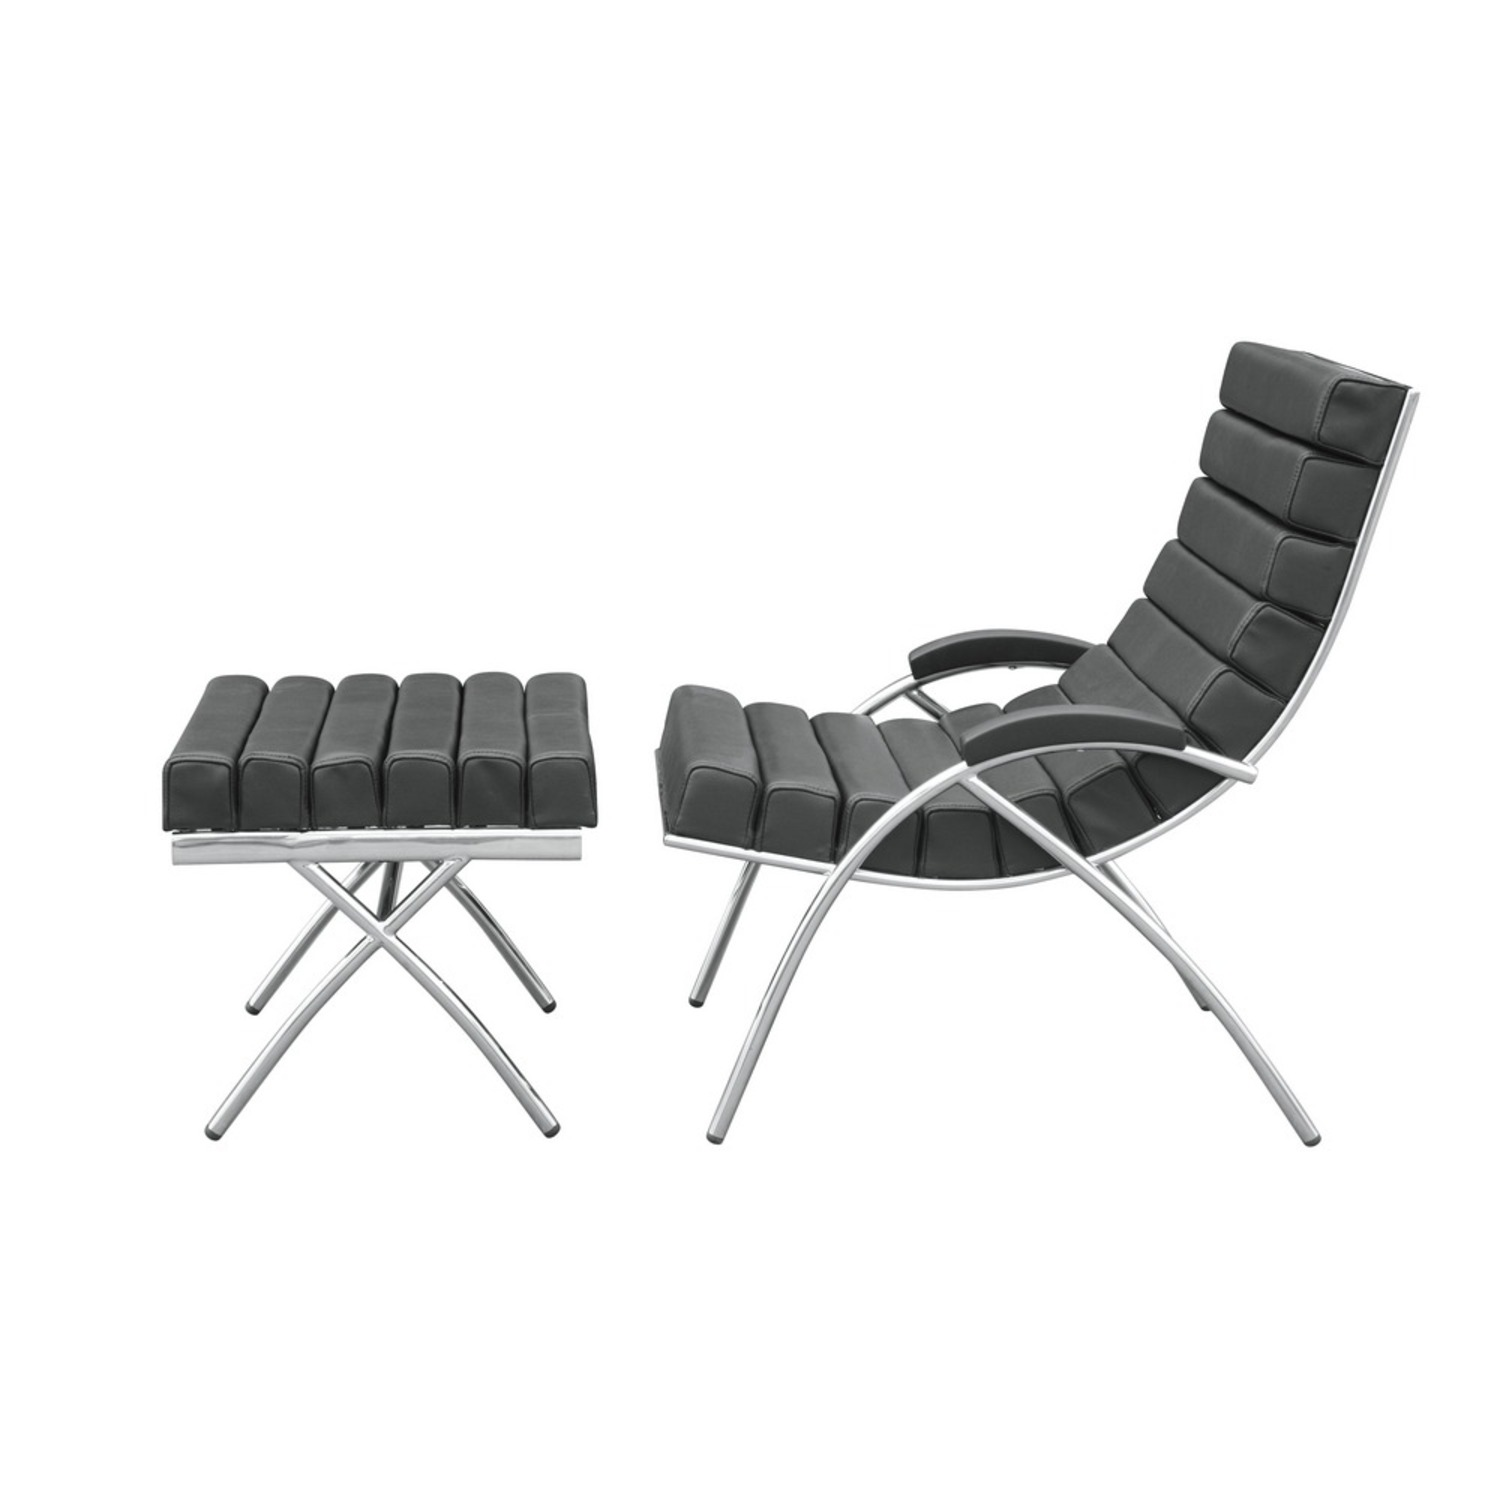 Chair & Ottoman In Black Leather & Stainless Steel - image-3